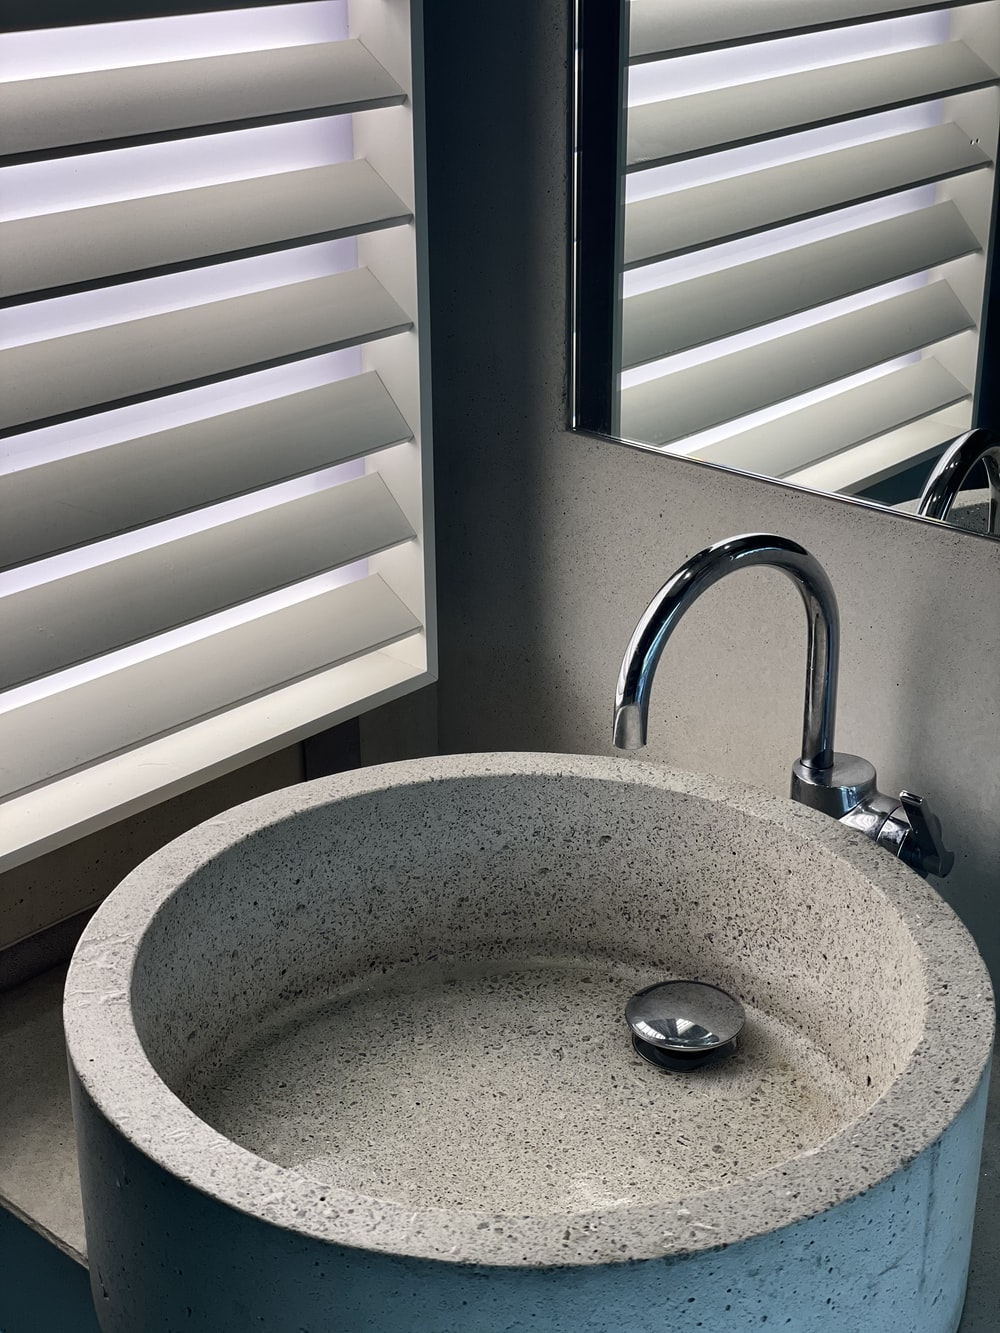 stainless steel faucet near window blinds